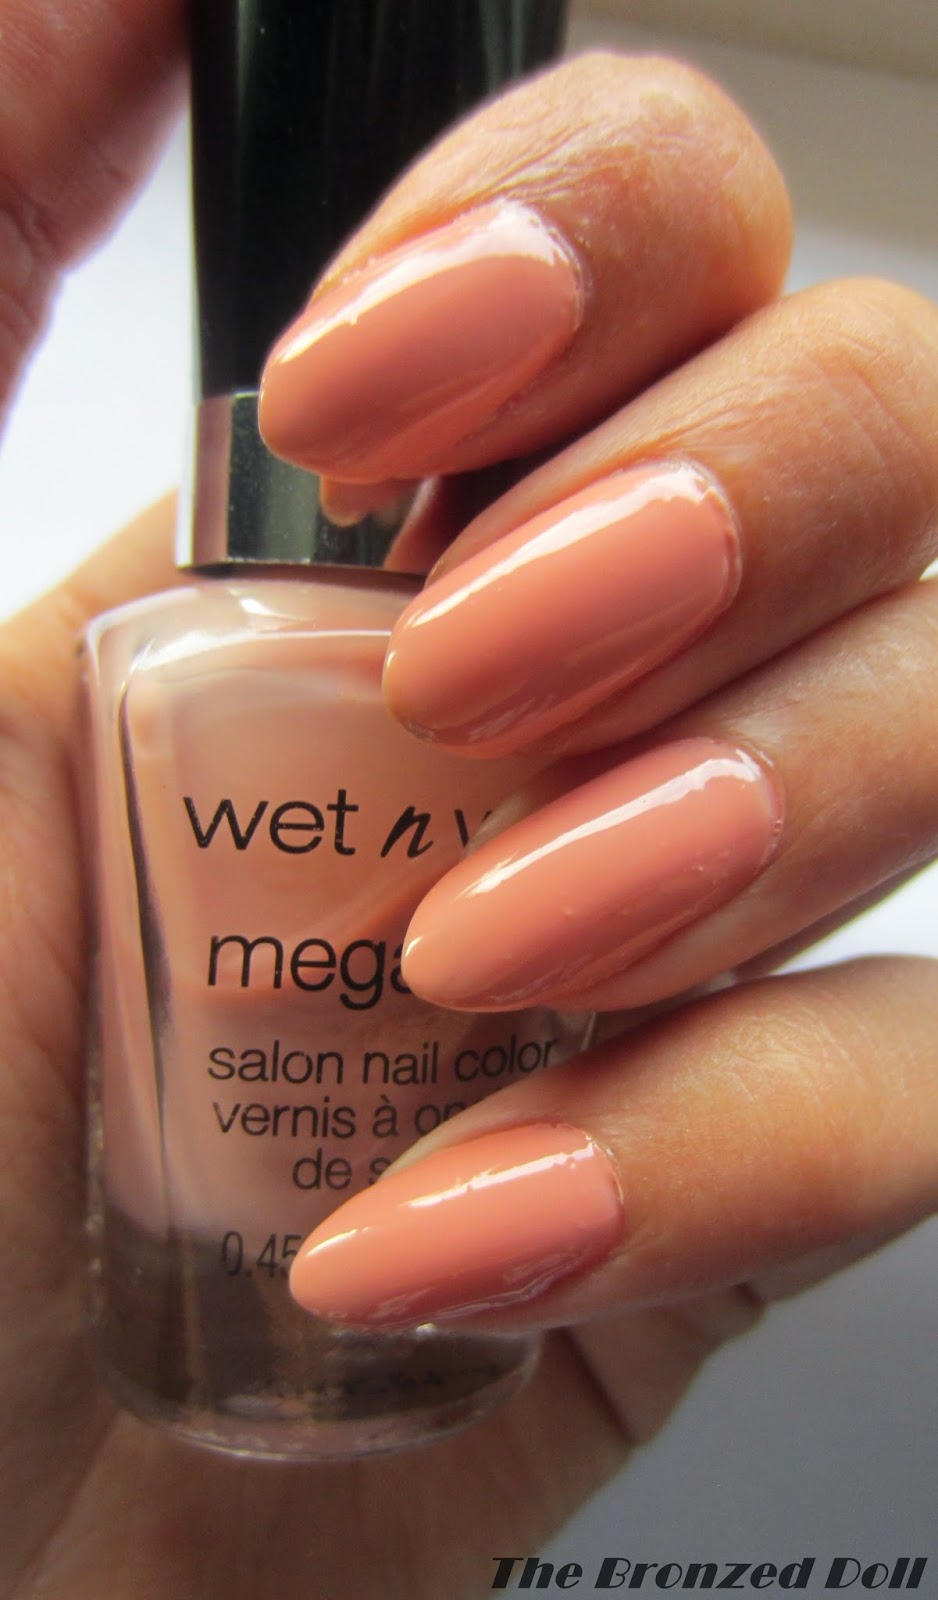 review and swatch of wet n wild nail polish called private viewing